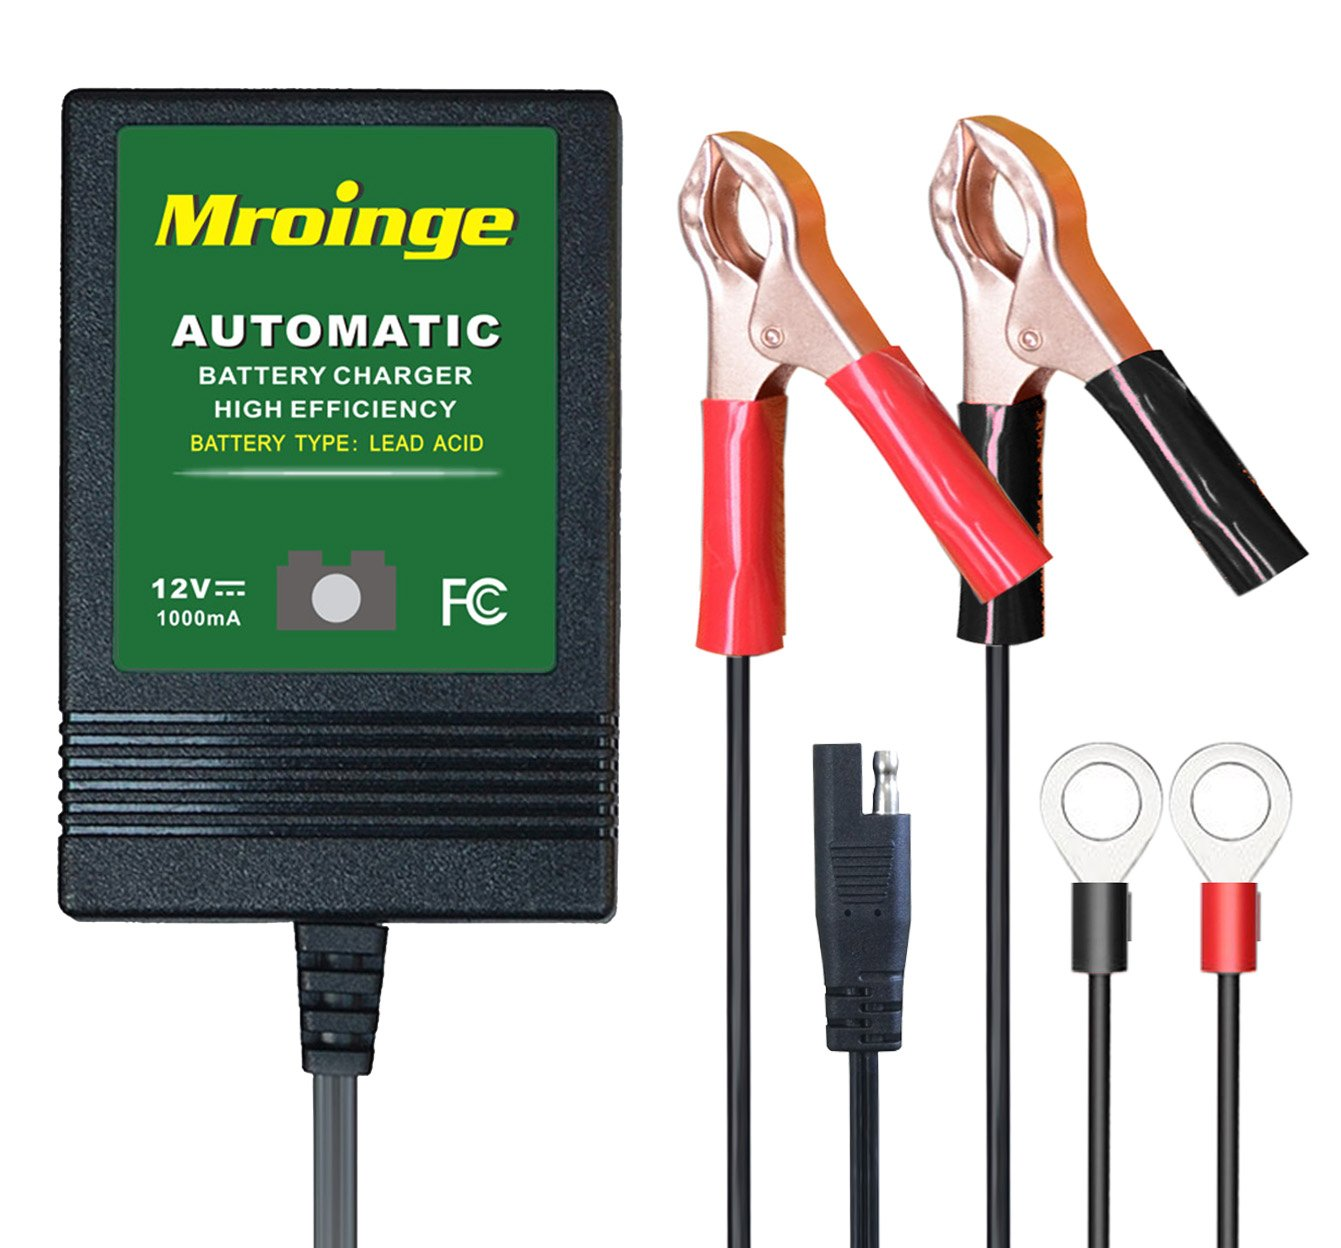 Mroinge automotive trickle battery charger maintainer 12V 1A for car motorcycle Lawn Mower SLA ATV WET AGM GEL CELL Lead Acid Batteries, Smart battery charger is tender charge for protect your battery